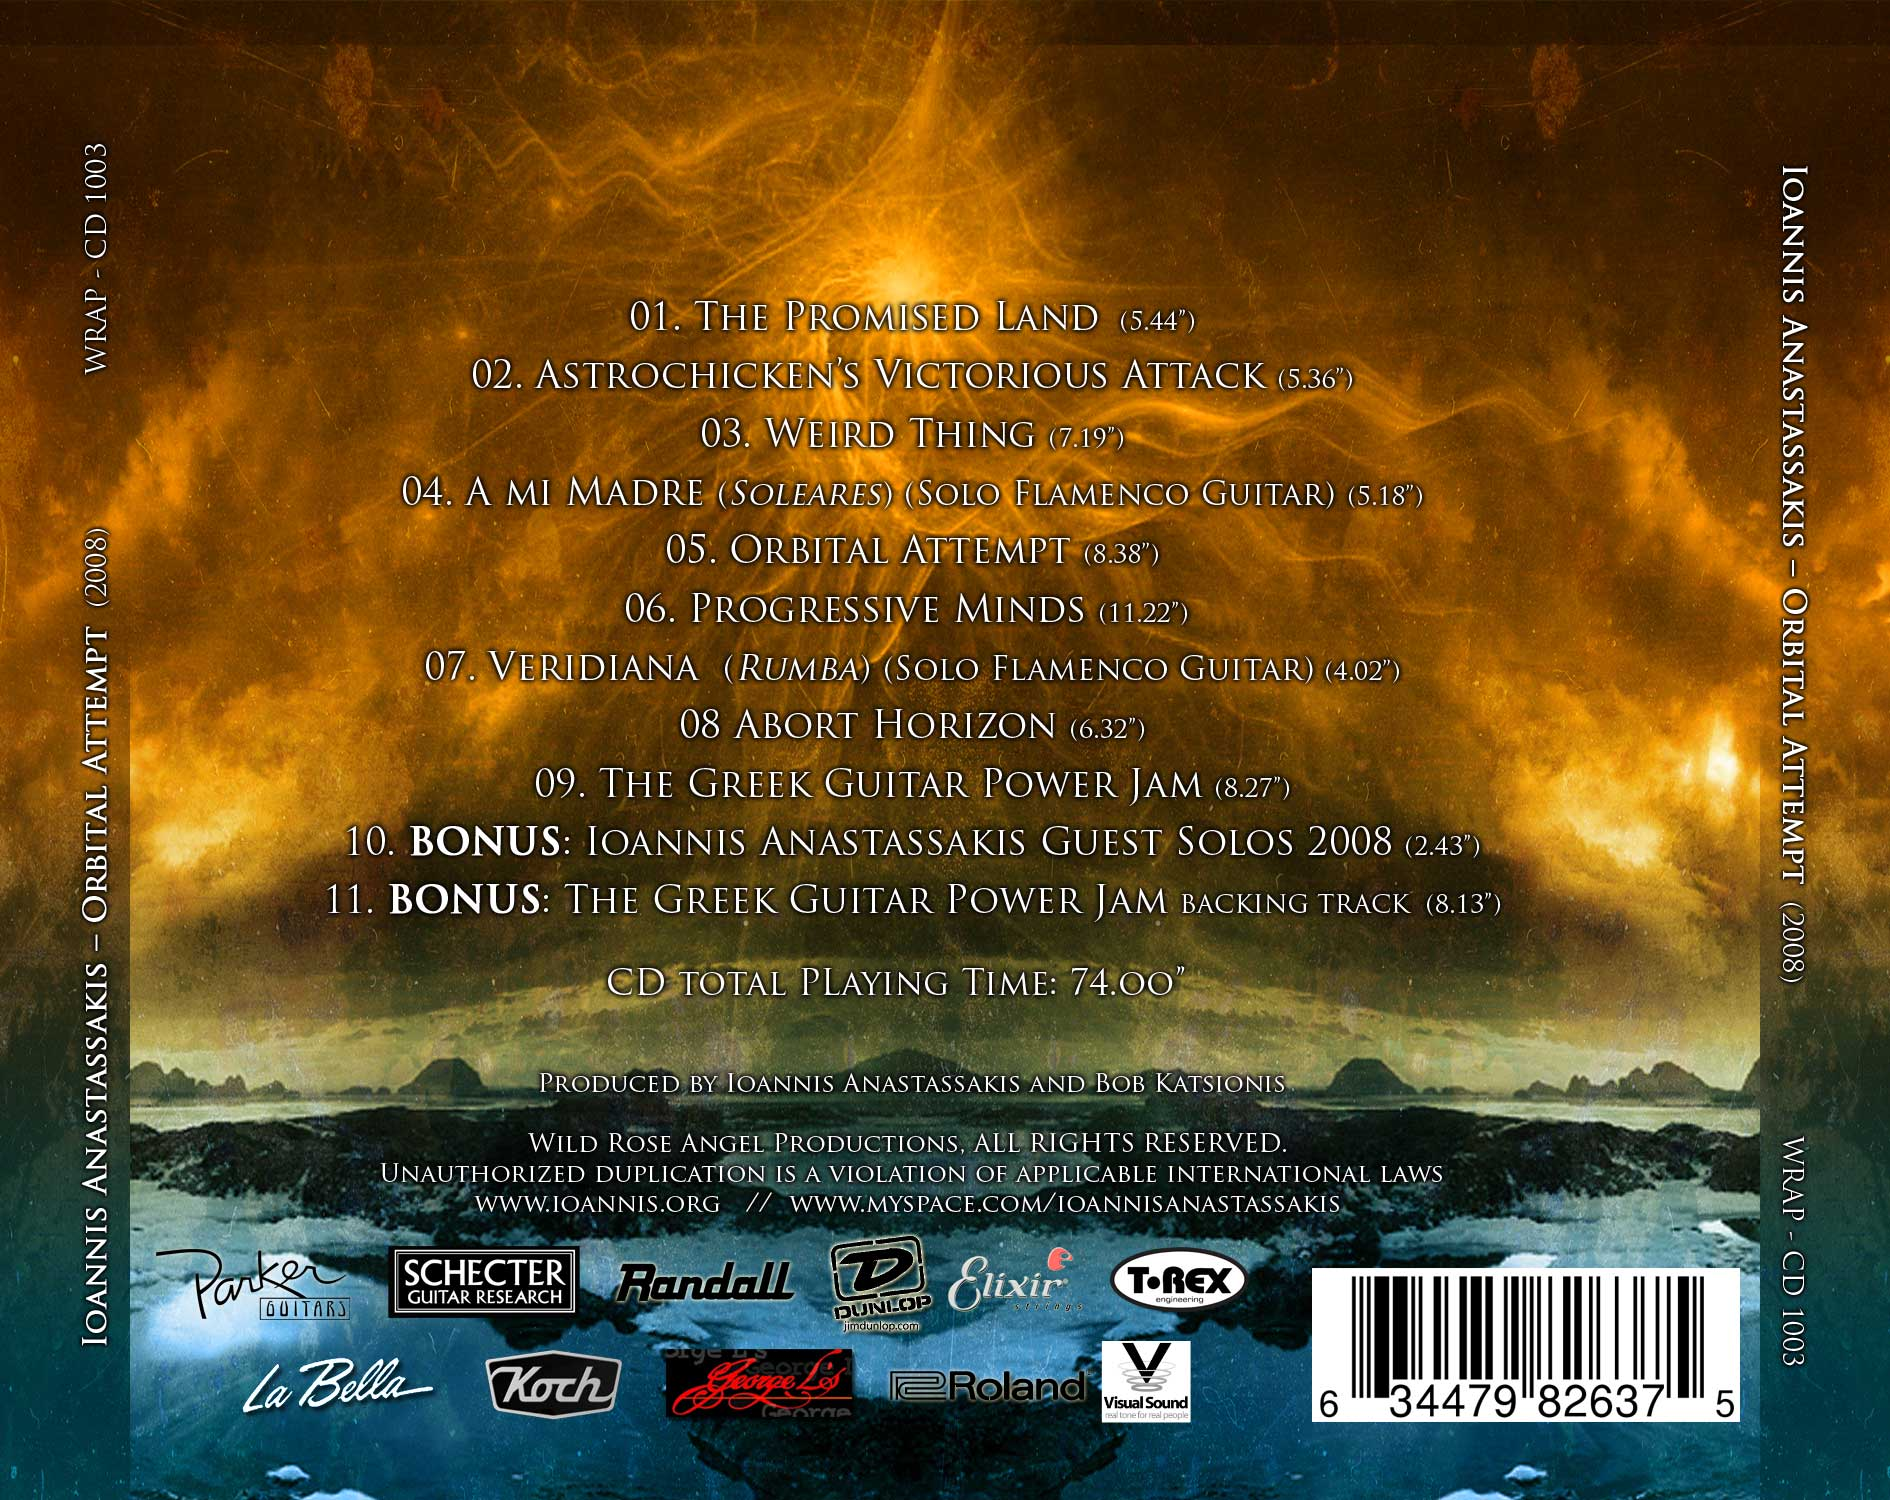 ioannis-anastassakis-orbital-attempt-2009-cd-back